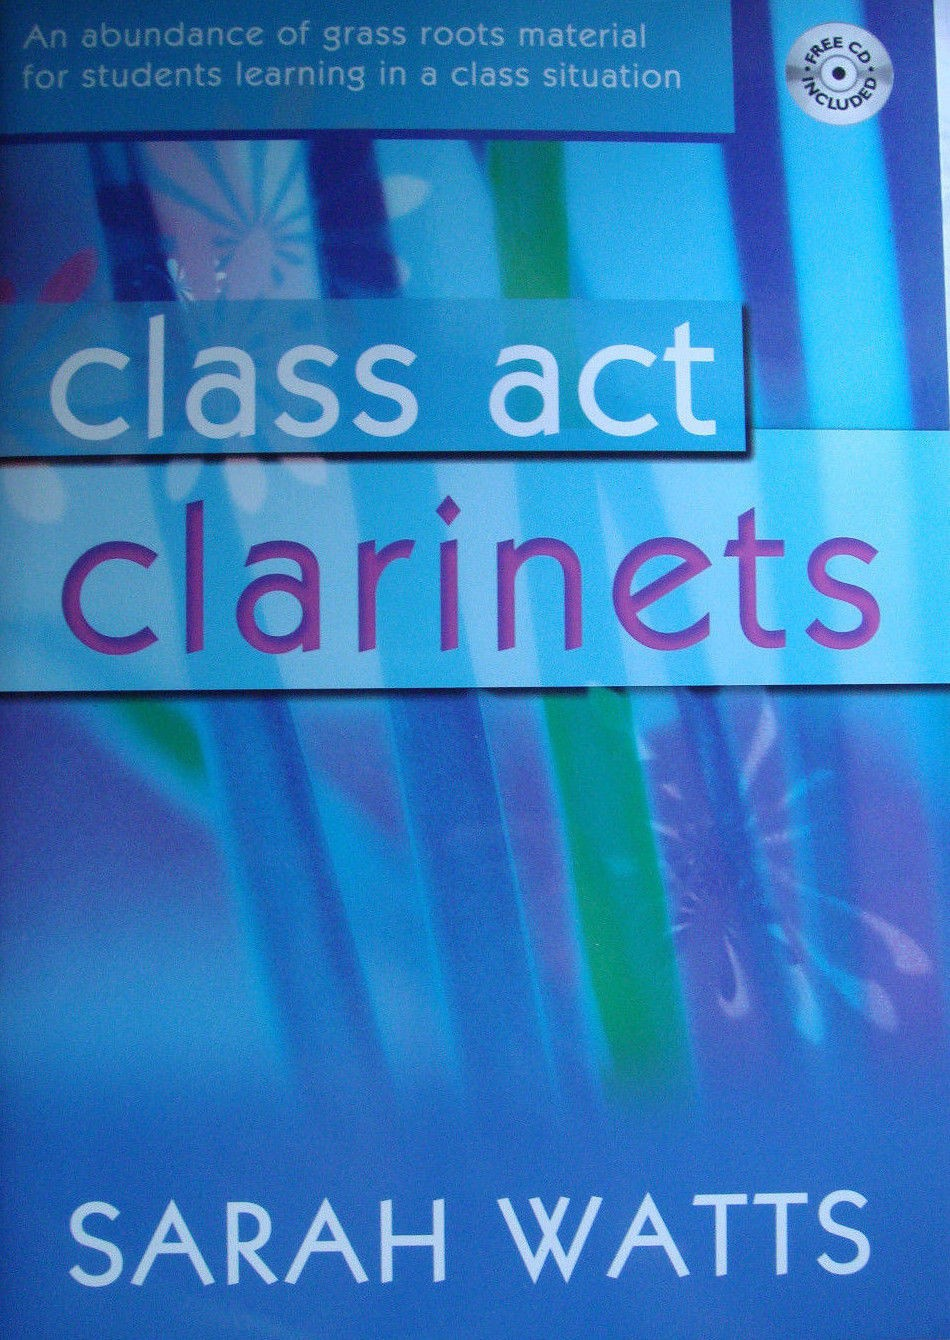 Class Act Clarinets Clarinet Beginner Learn Tutor Book CD Sarah Watts Music S108